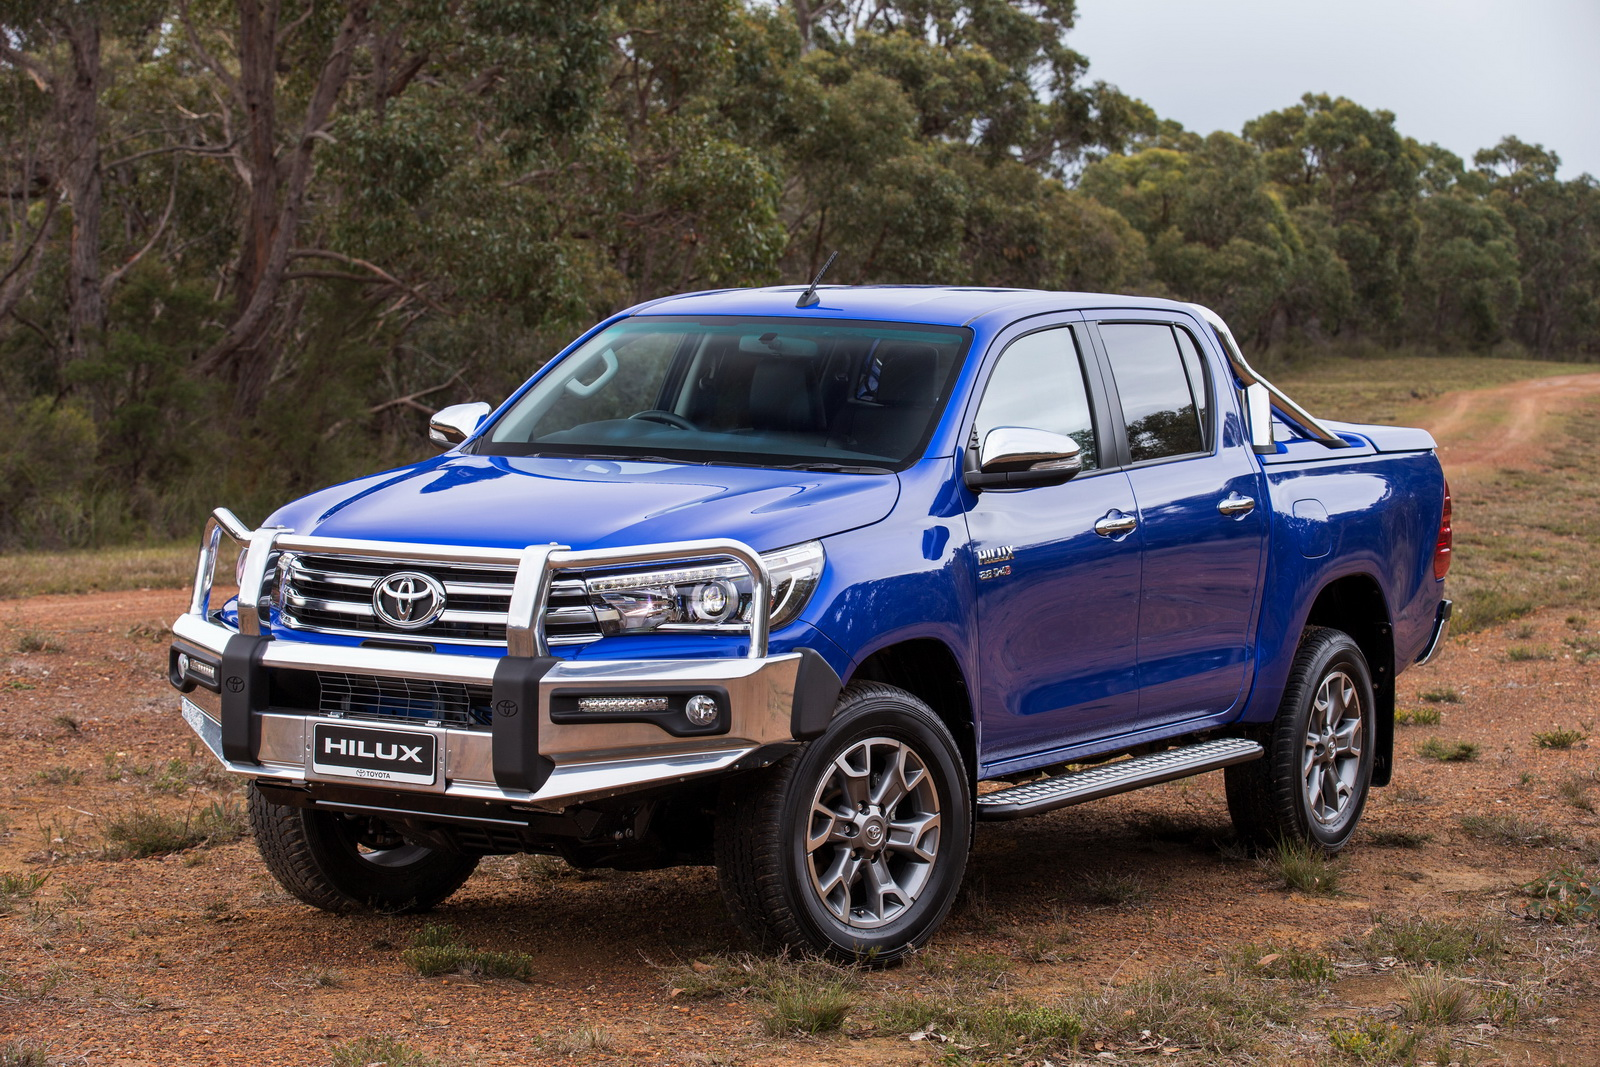 Toyota hilux photo - 4